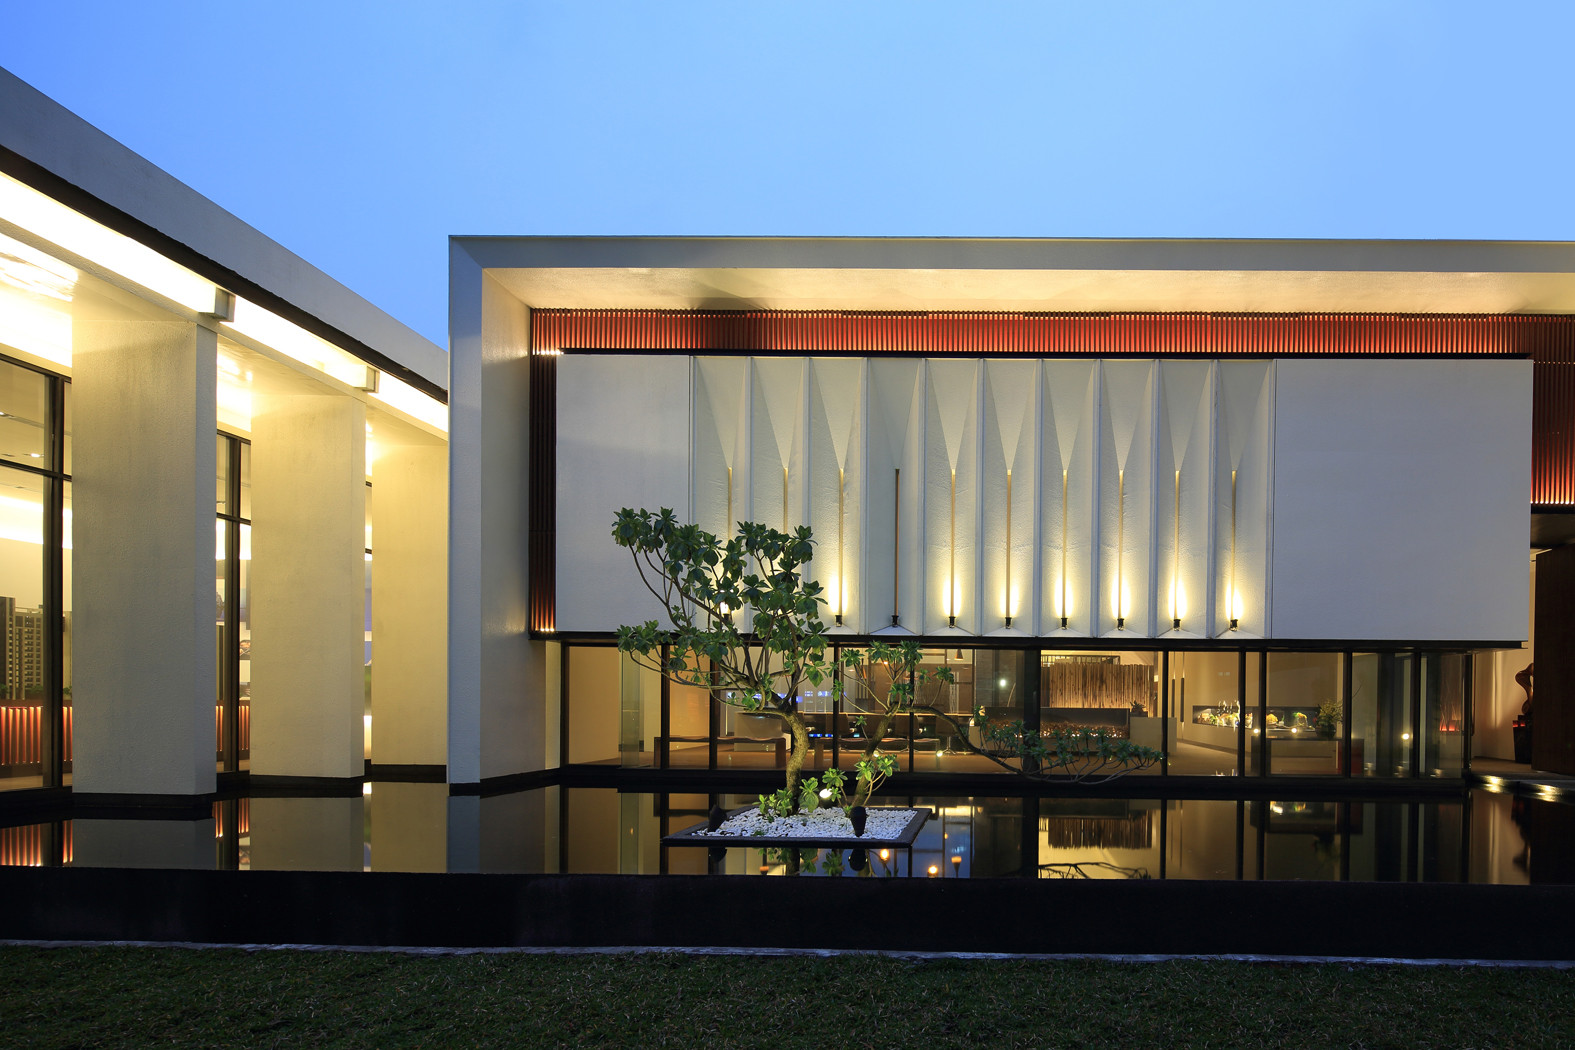 Gallery of exquisite minimalist arcadian architecture for Architecture building design